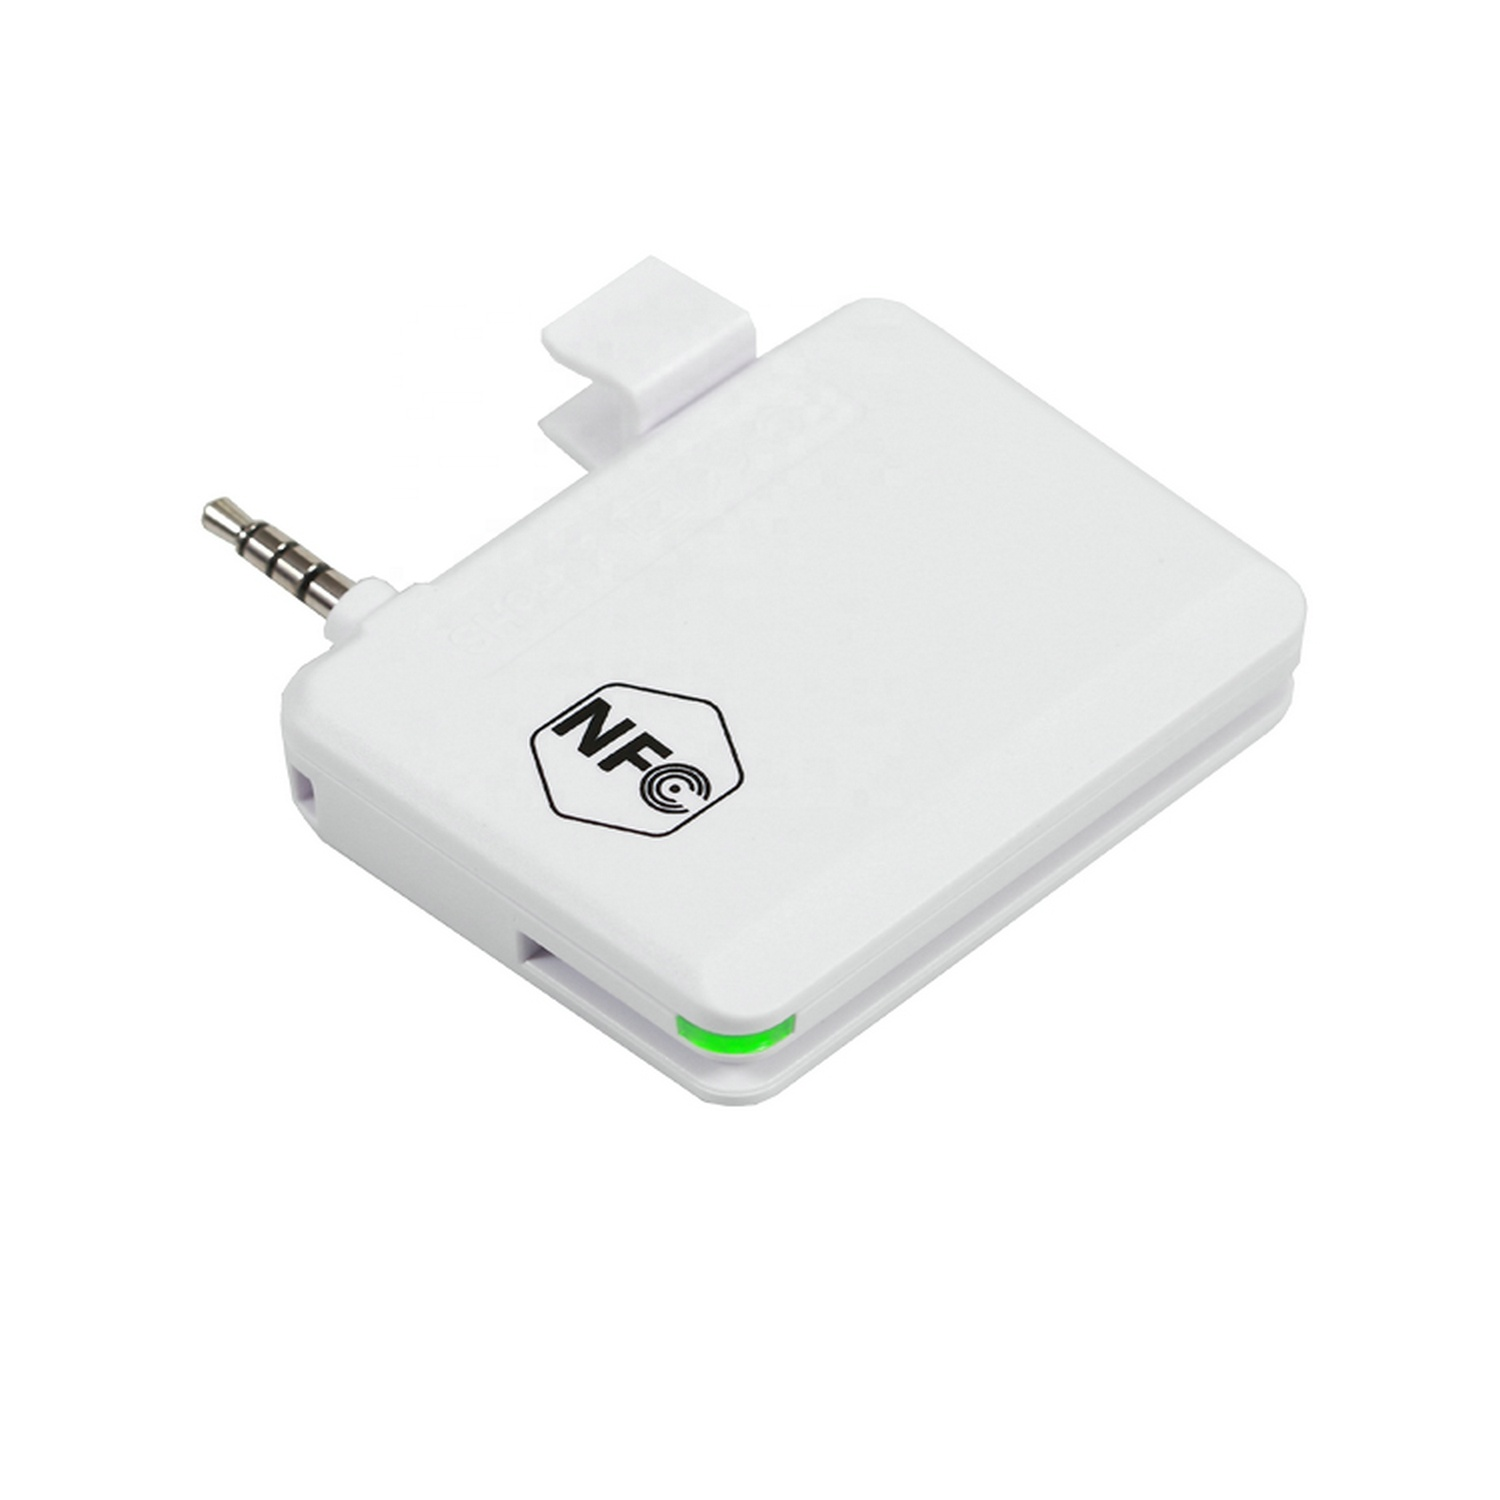 Android Headphone Jack EMV IC Chip Credit Mobile Smart Card Reader ACR35